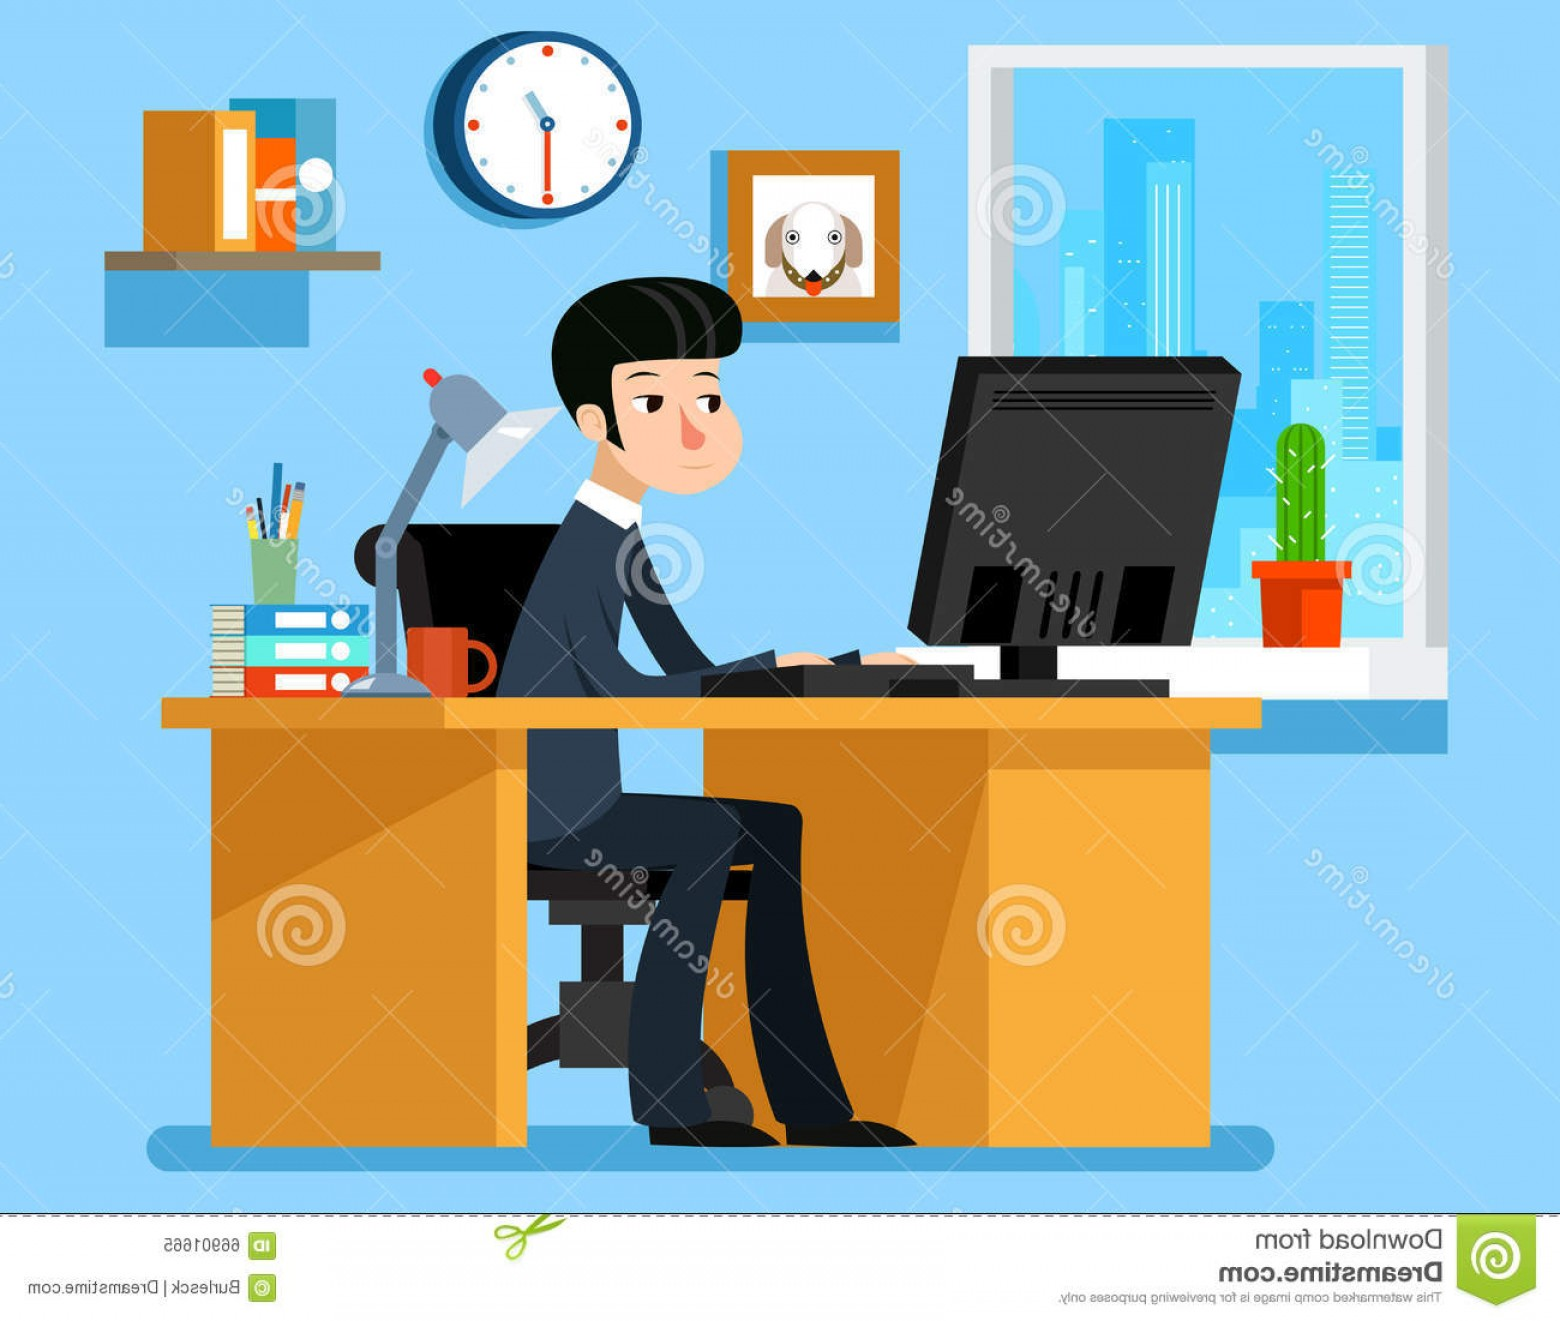 Vector Man Working In Cabin: Stock Illustration Businessman Working Office Desk Computer Vector Illustration Flat Style Work Man Image